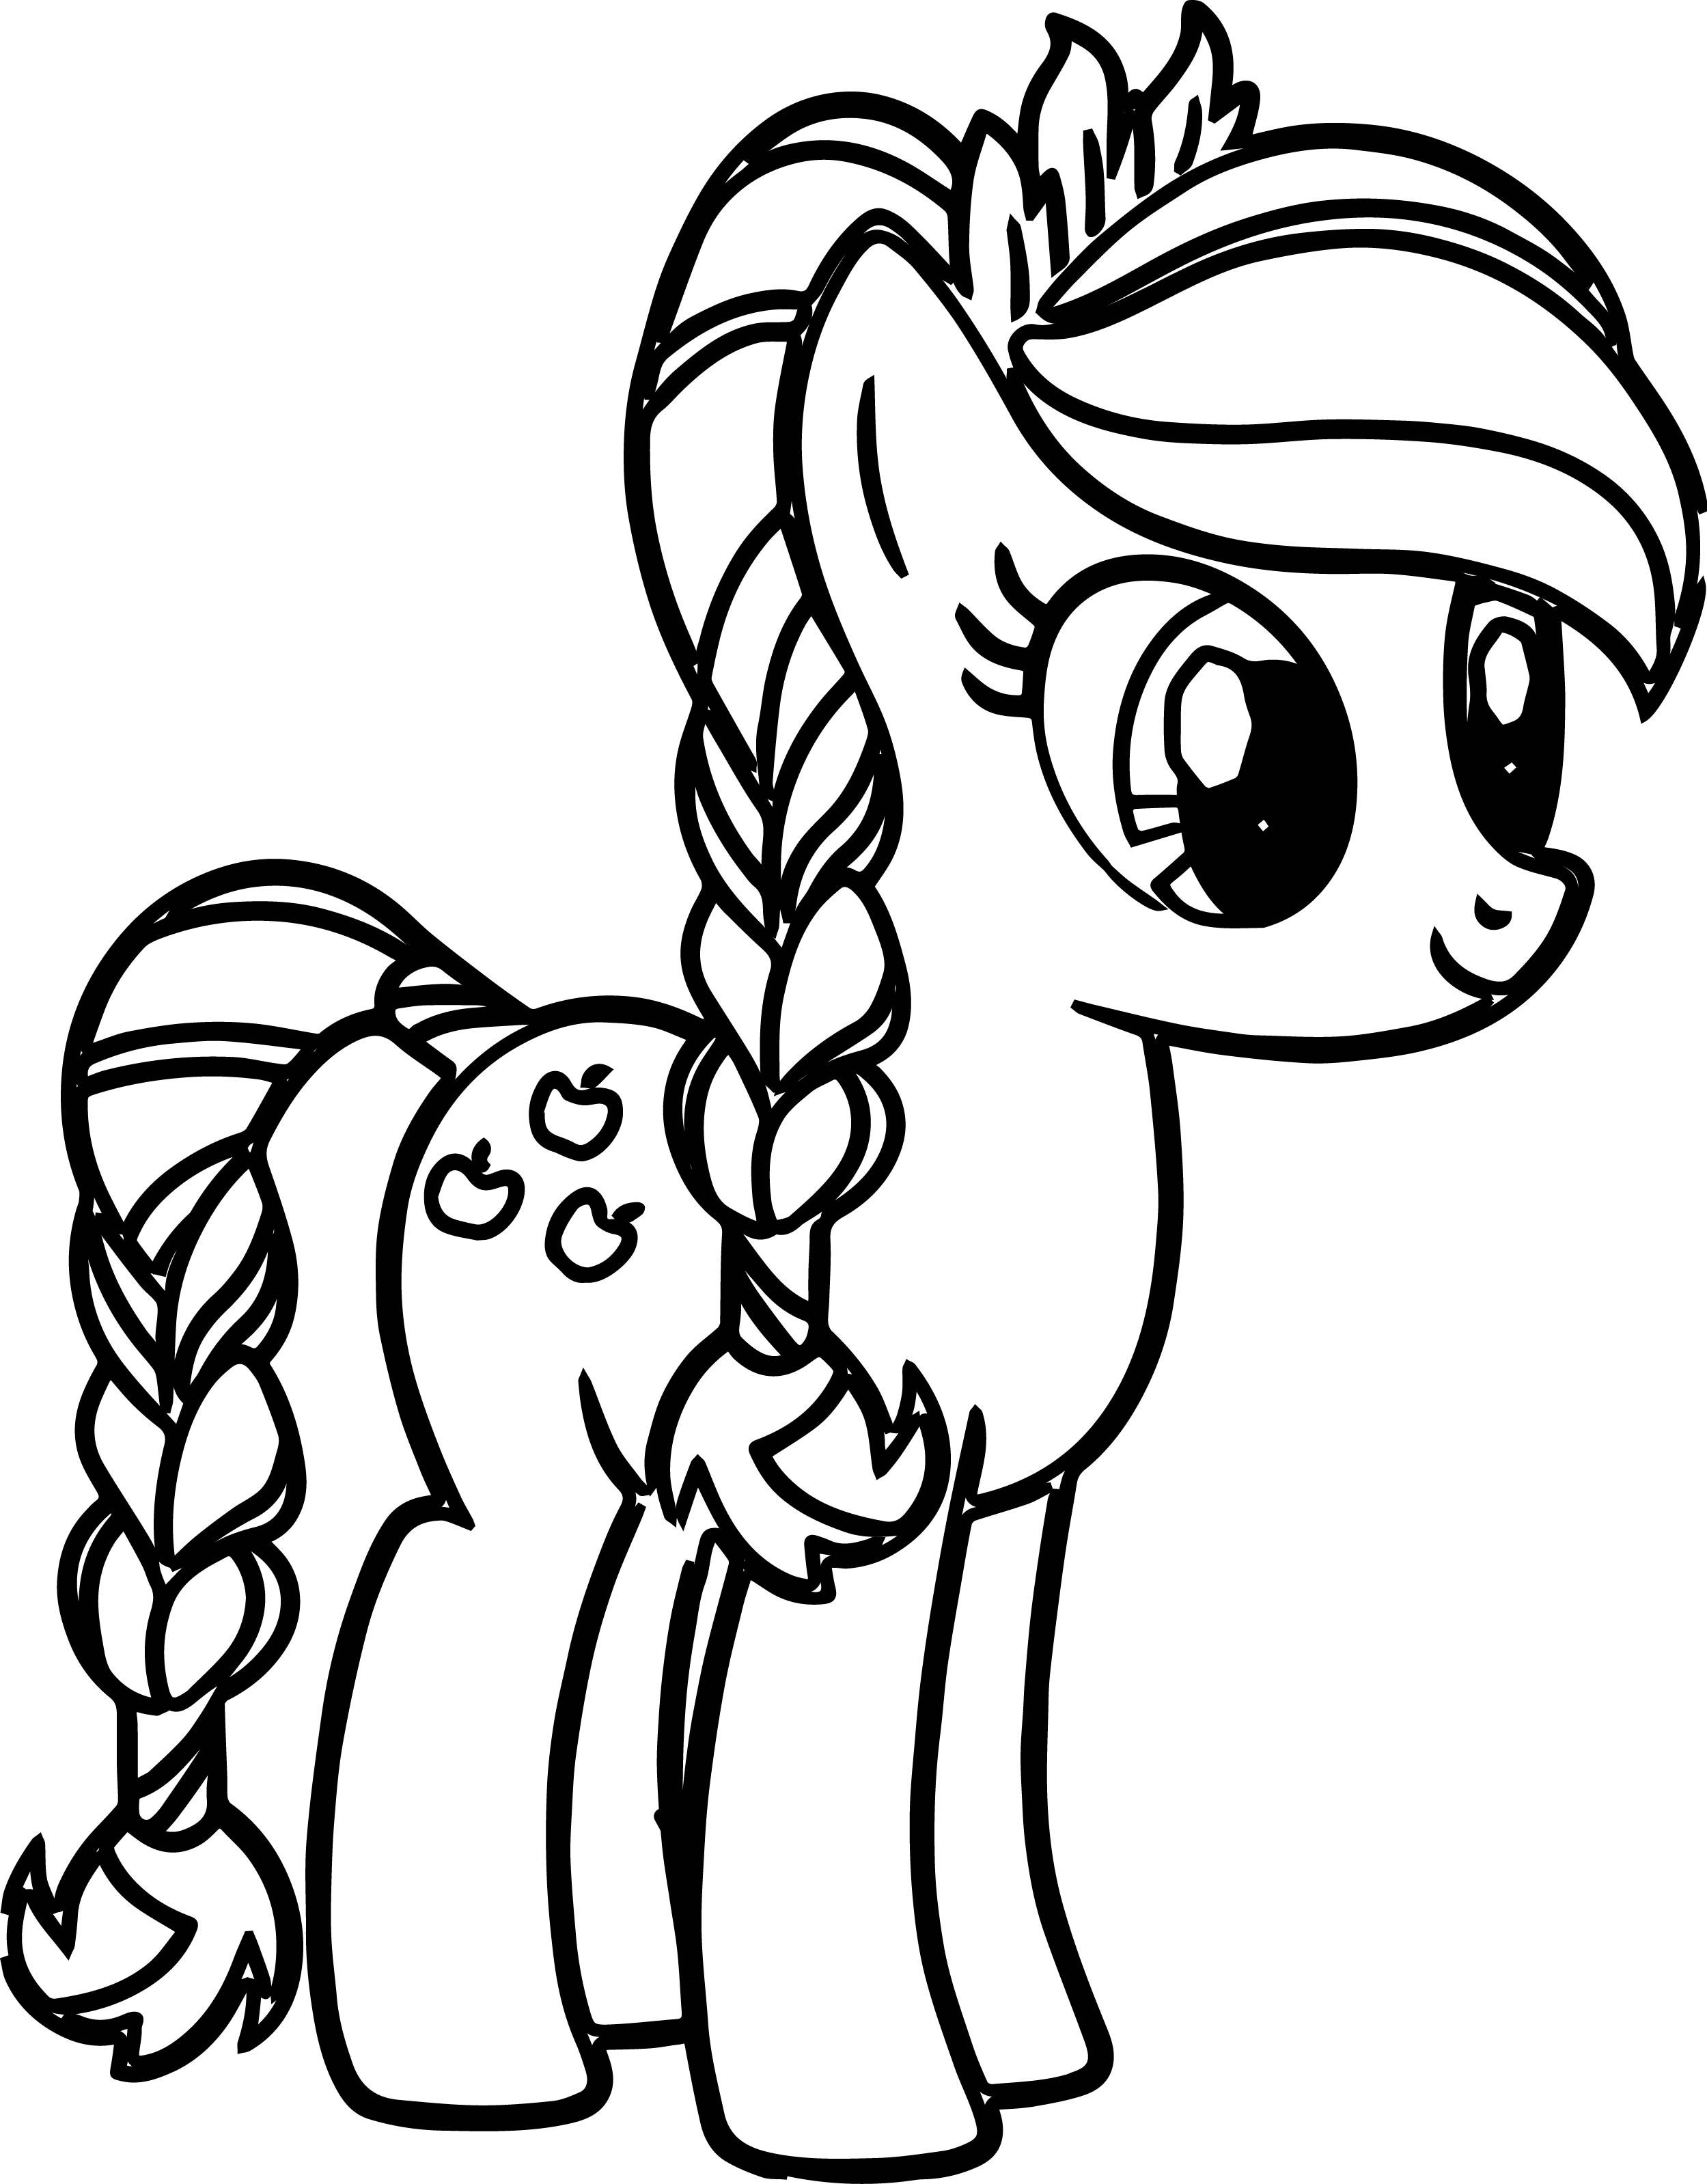 coloring for unicorn wings unicorn coloring page coloring for unicorn